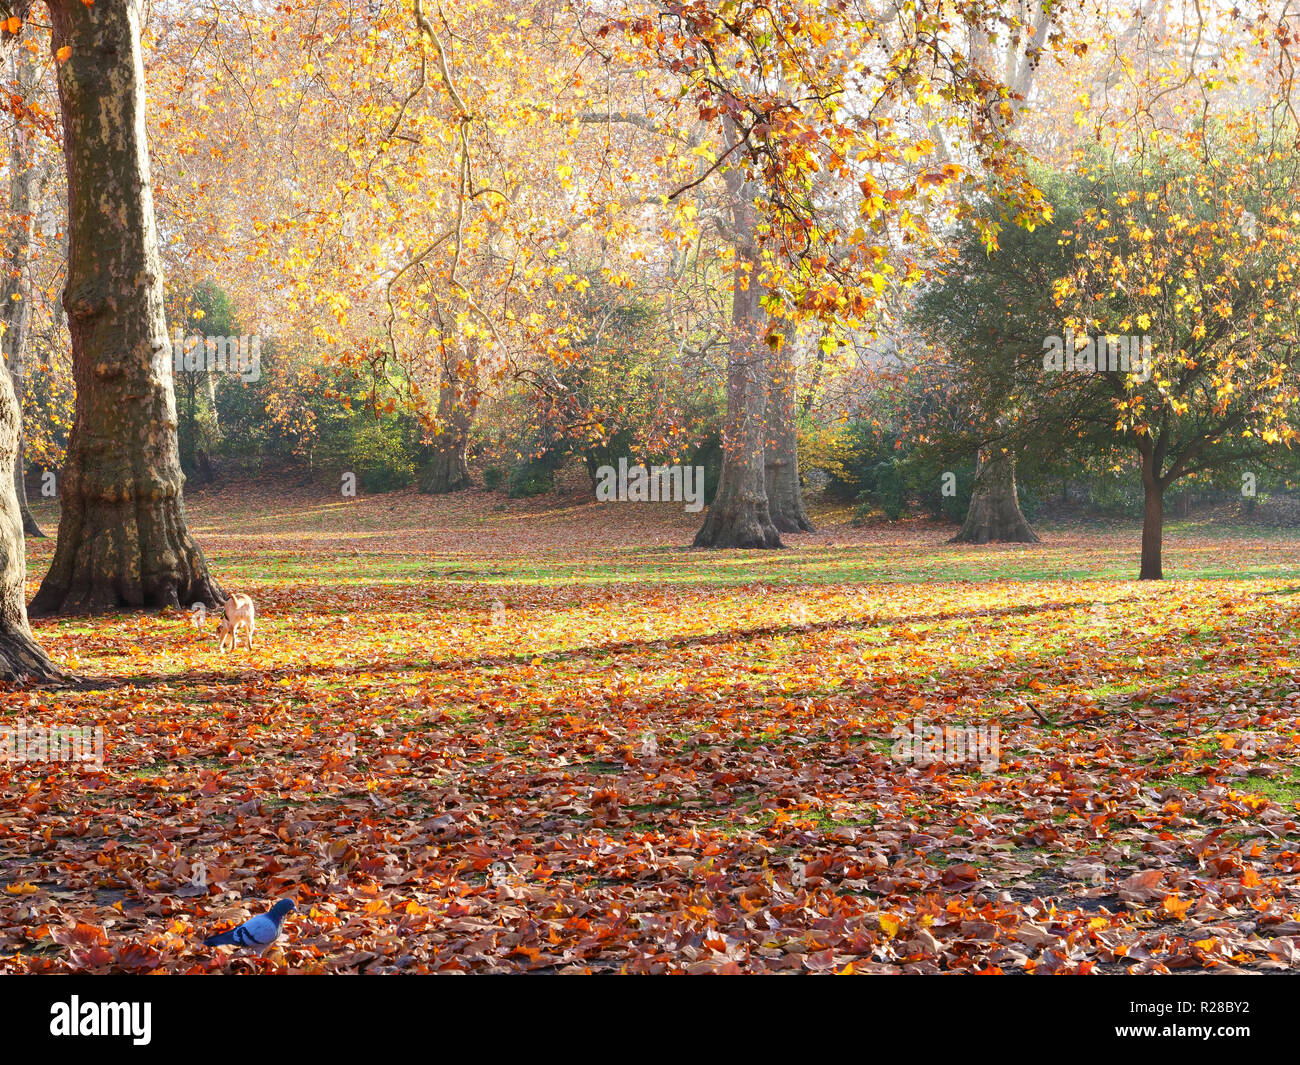 London, UK. 17th November, 2018. This weekend is an excellent opportunity to go out for a nice walk in any of the parks and open spaces of London, to enjoy the fresh, sunny weather and colourful autumn leaves. Credit: Joe Kuis / Alamy Live News Stock Photo